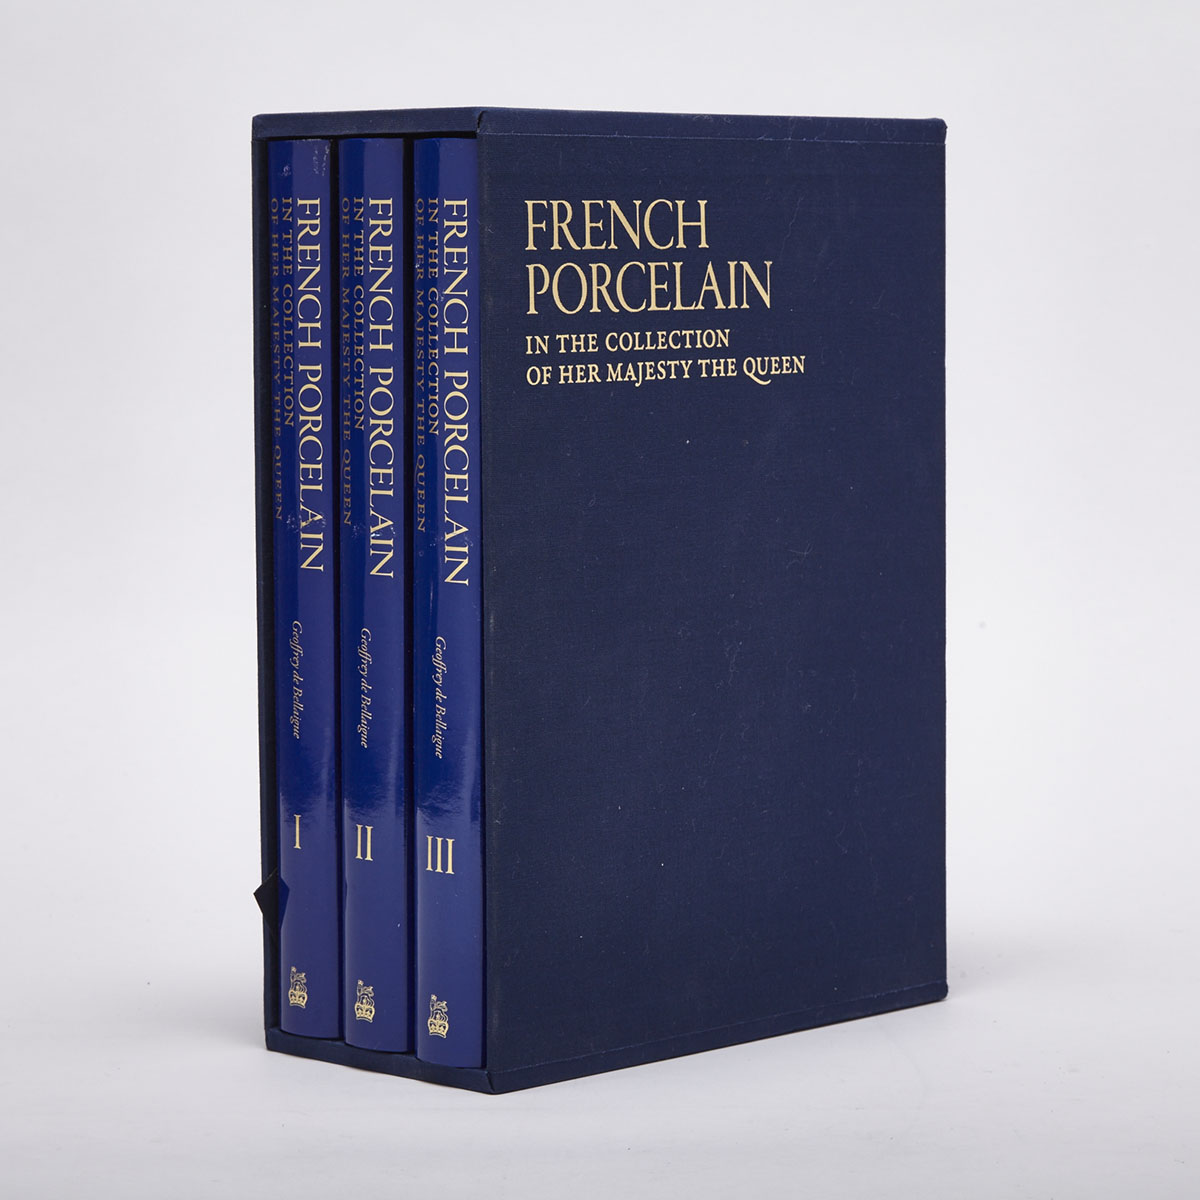 French Porcelain (3 volumes)